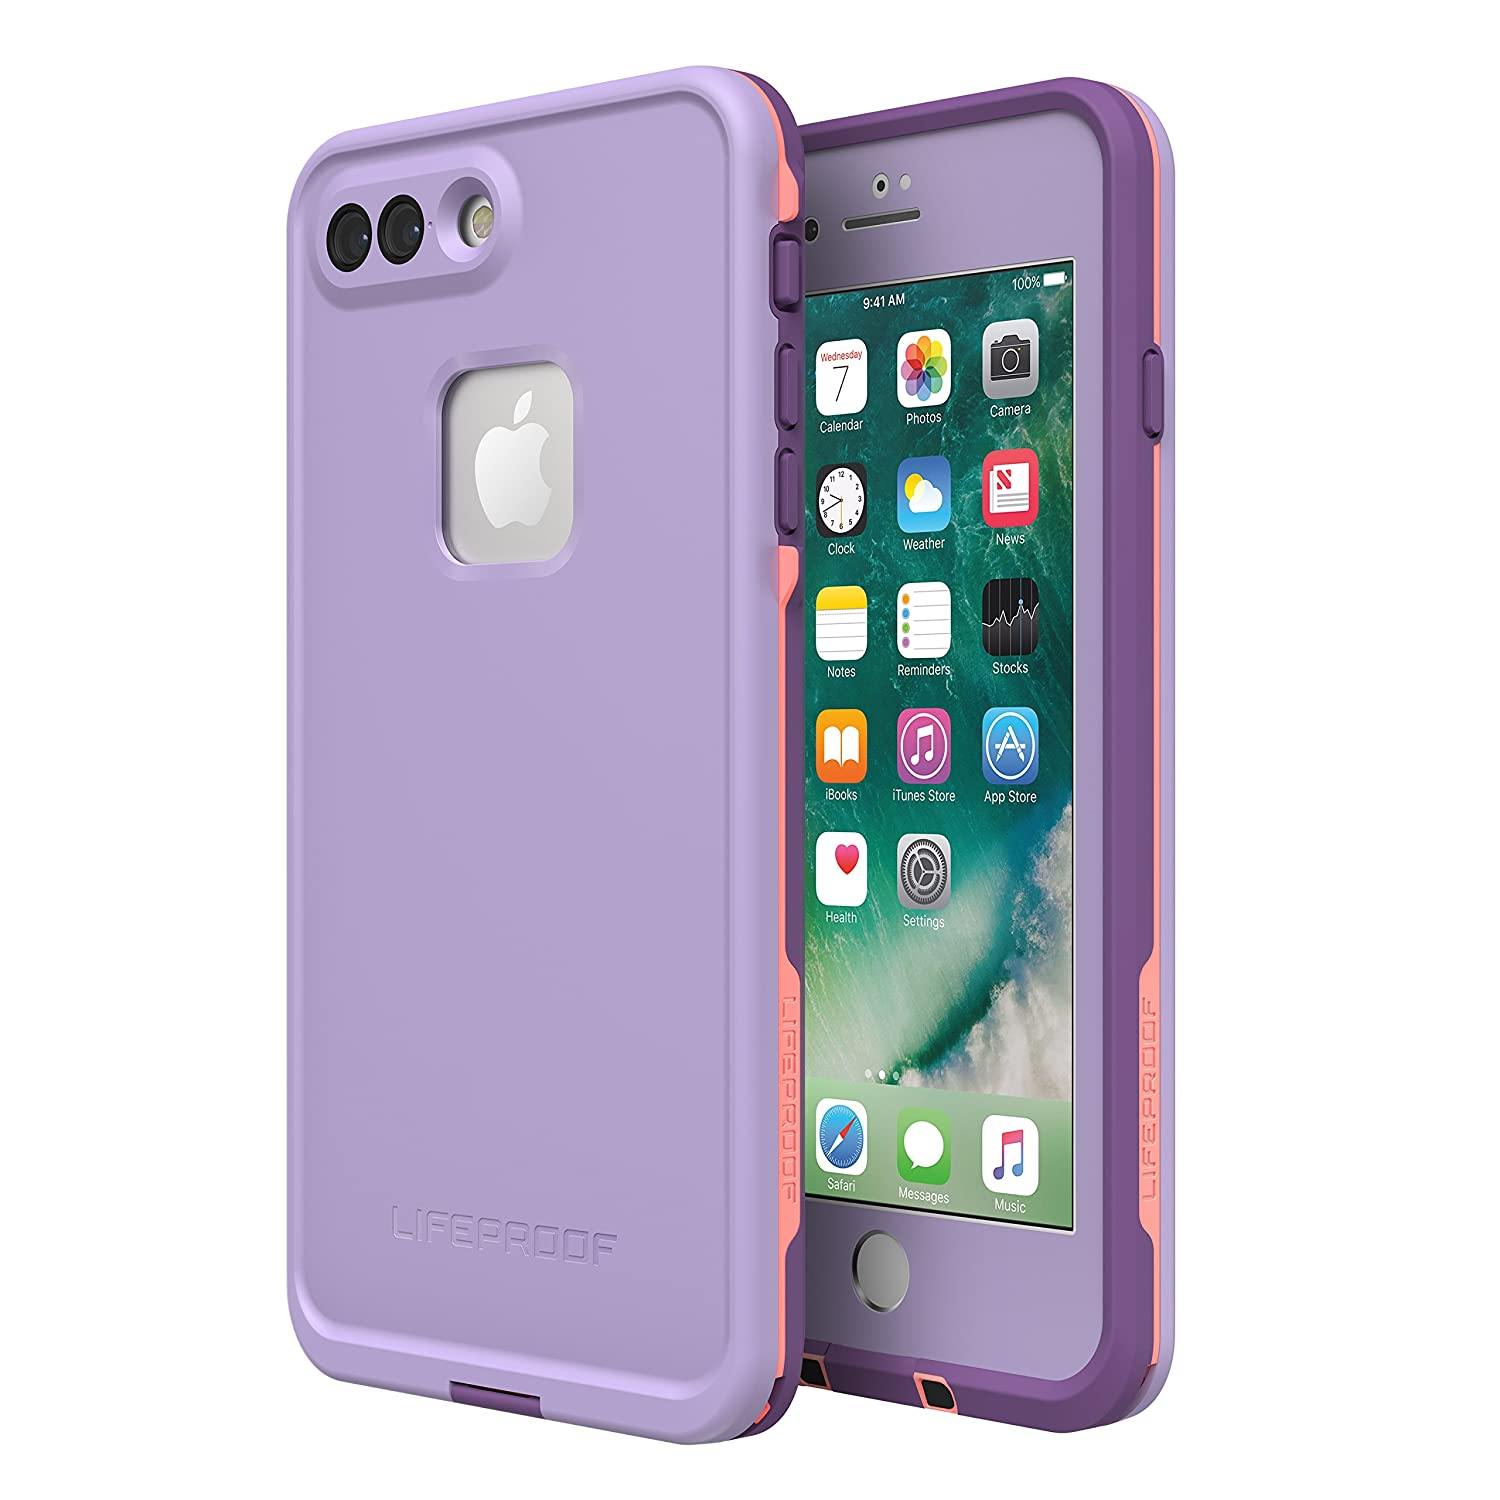 check out acd91 1b28b Lifeproof FRĒ SERIES Waterproof Case for iPhone 8 Plus & 7 Plus (ONLY) -  Retail Packaging - CHAKRA (ROSE/FUSION CORAL/ROYAL LILAC)